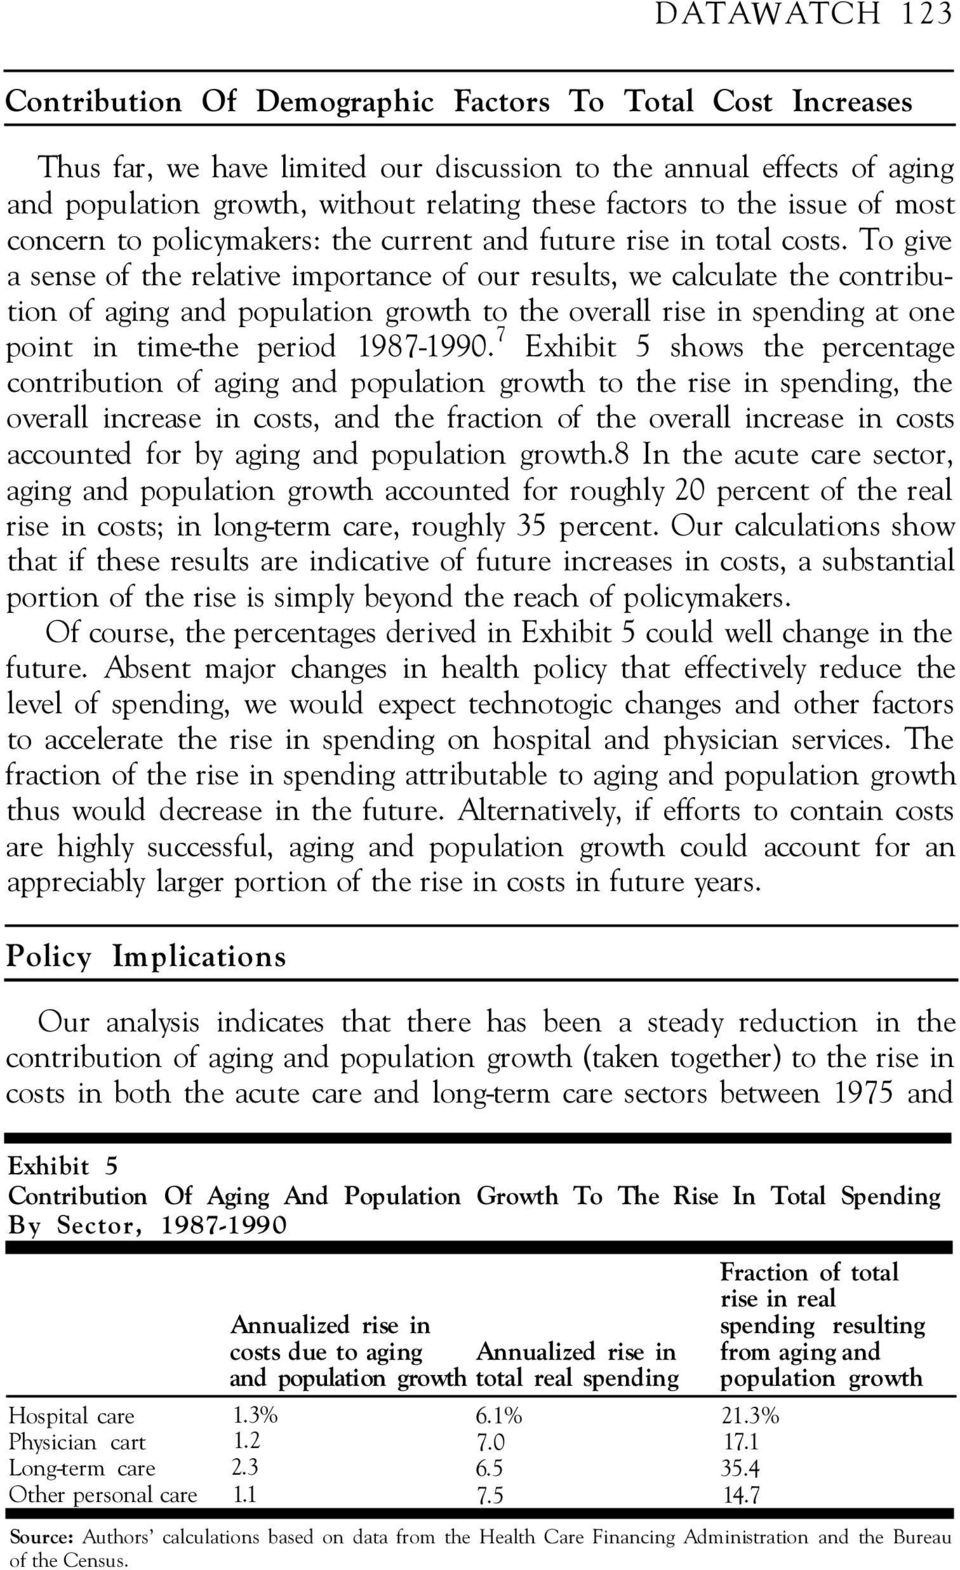 To give a sense of the relative importance of our results, we calculate the contribution of aging and population growth to the overall rise in spending at one point in time-the period 1987-1990.